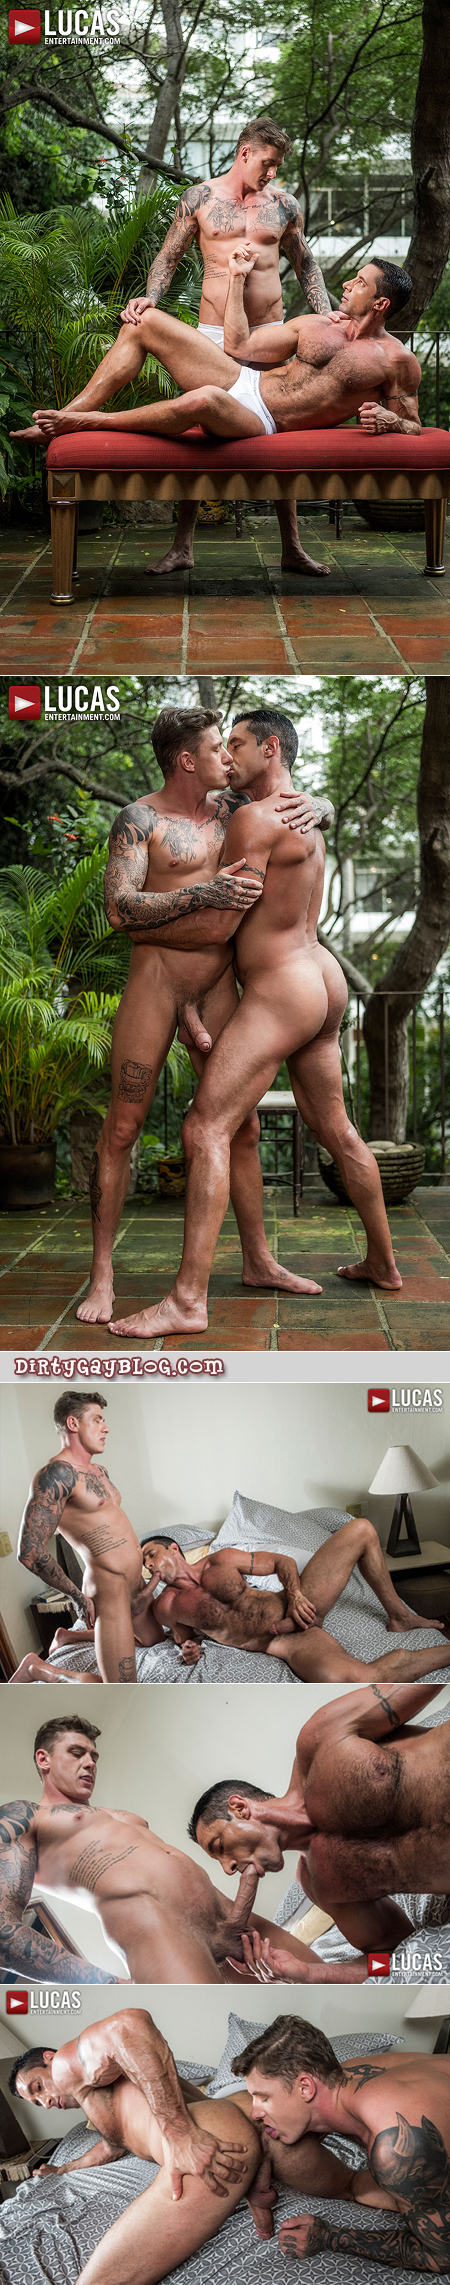 Hairy muscle Daddy getting fucked bareback by a tattooed, muscular uncut stud.